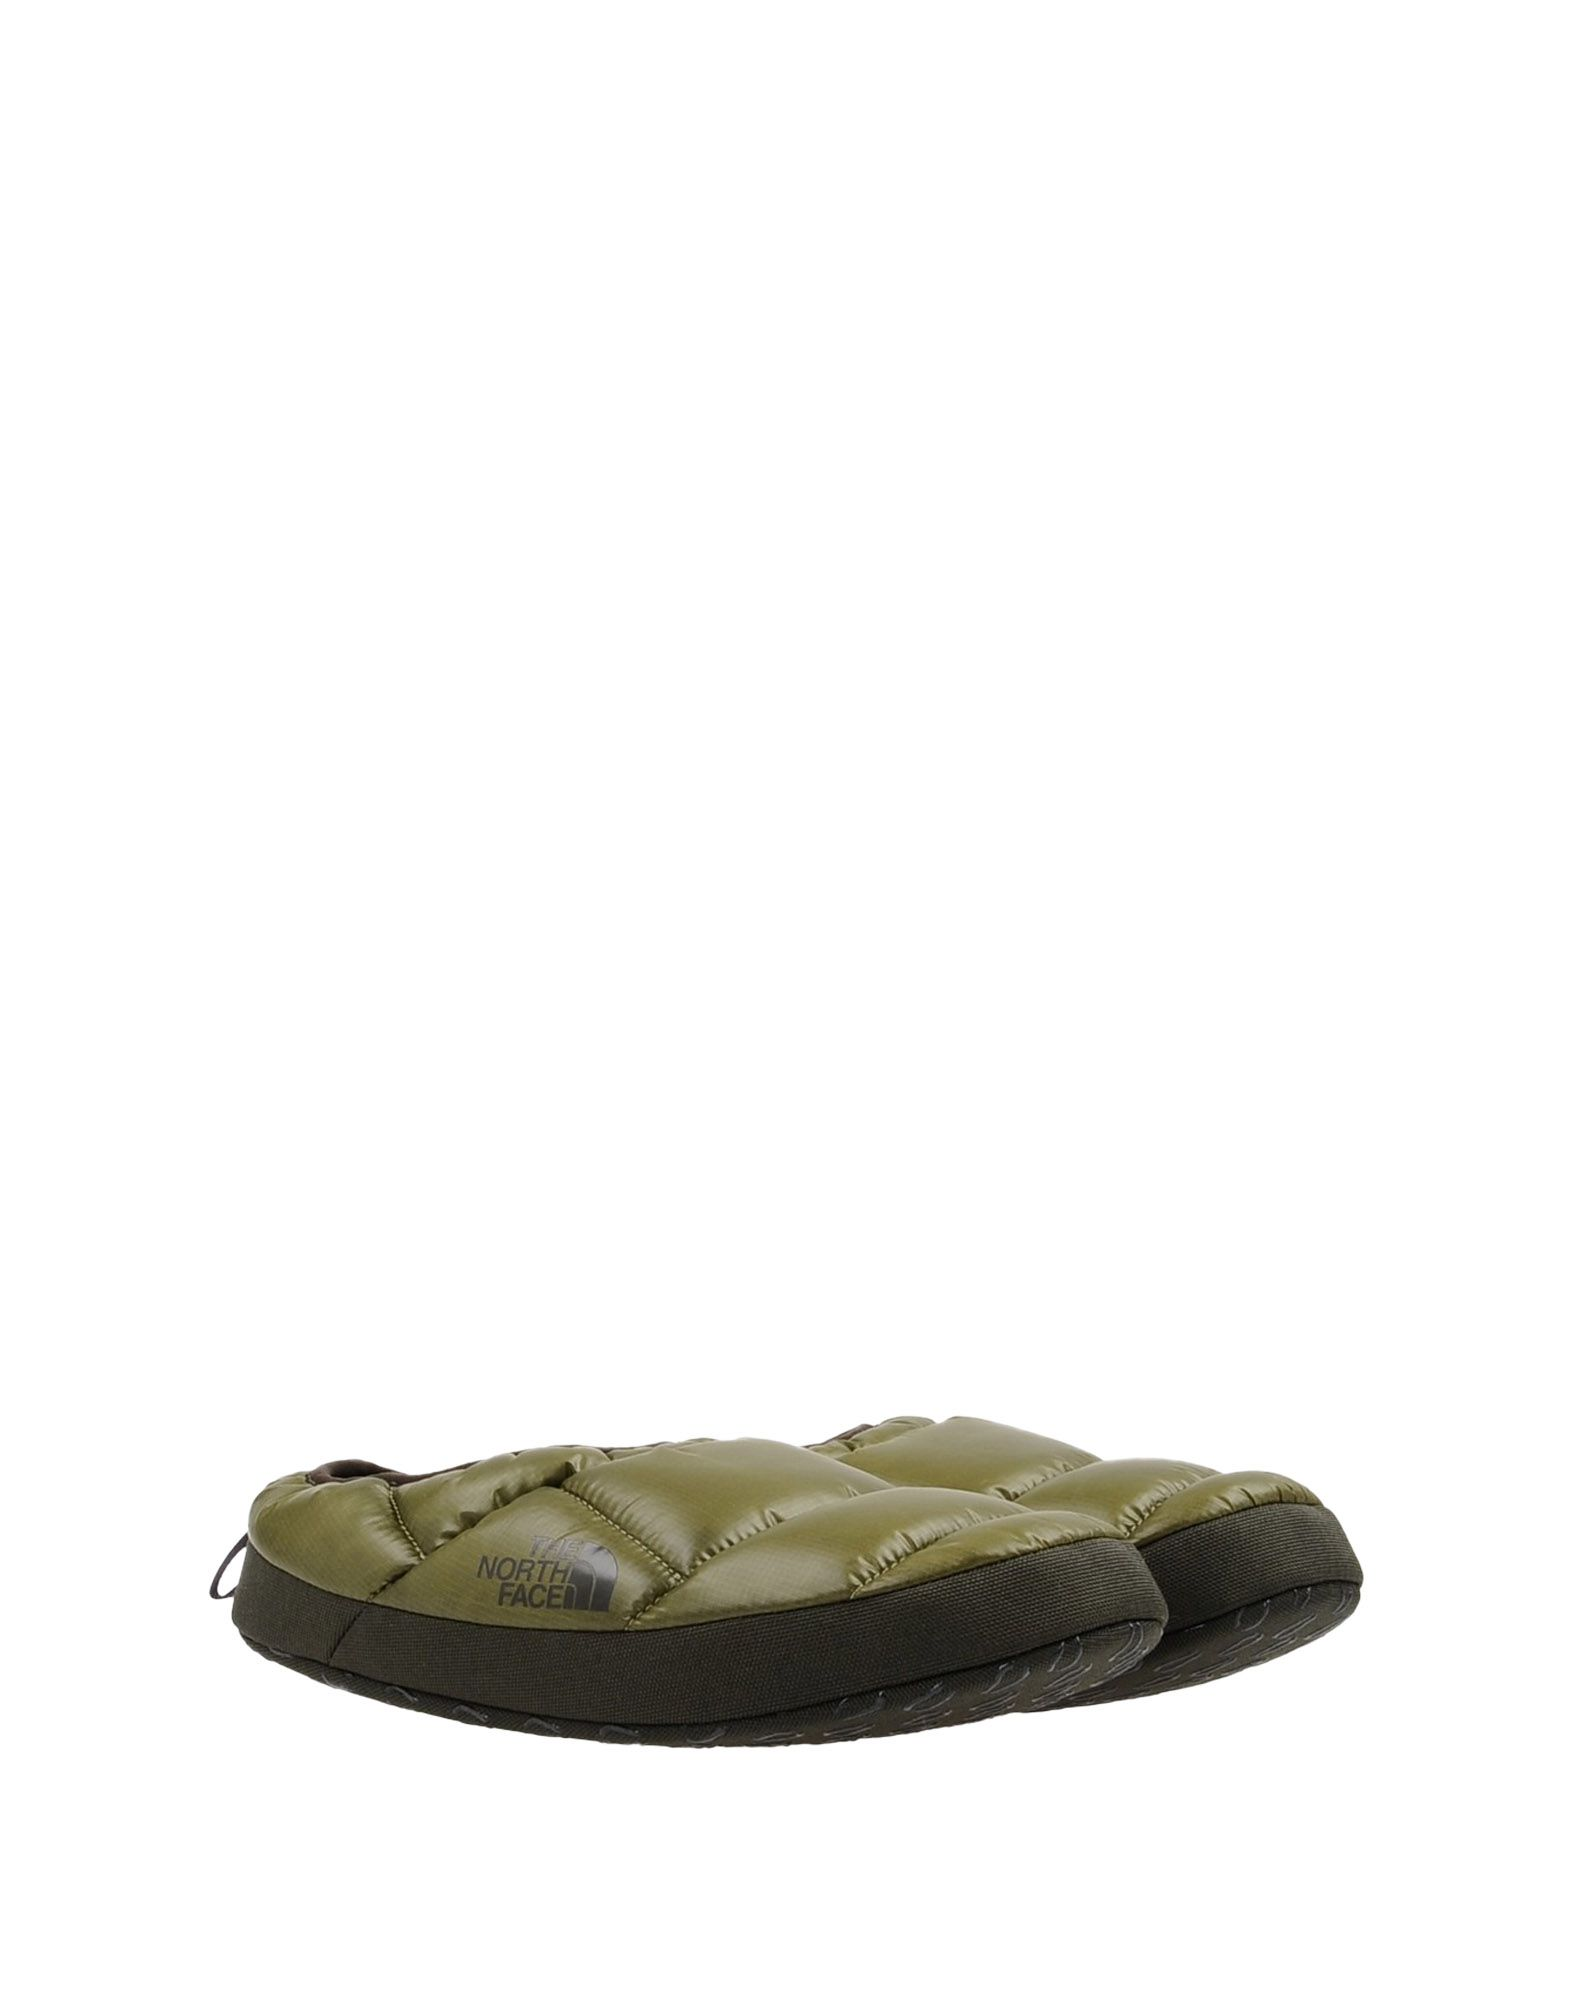 Chaussons The North Face Tent Mule Man - Homme - Chaussons The North Face sur